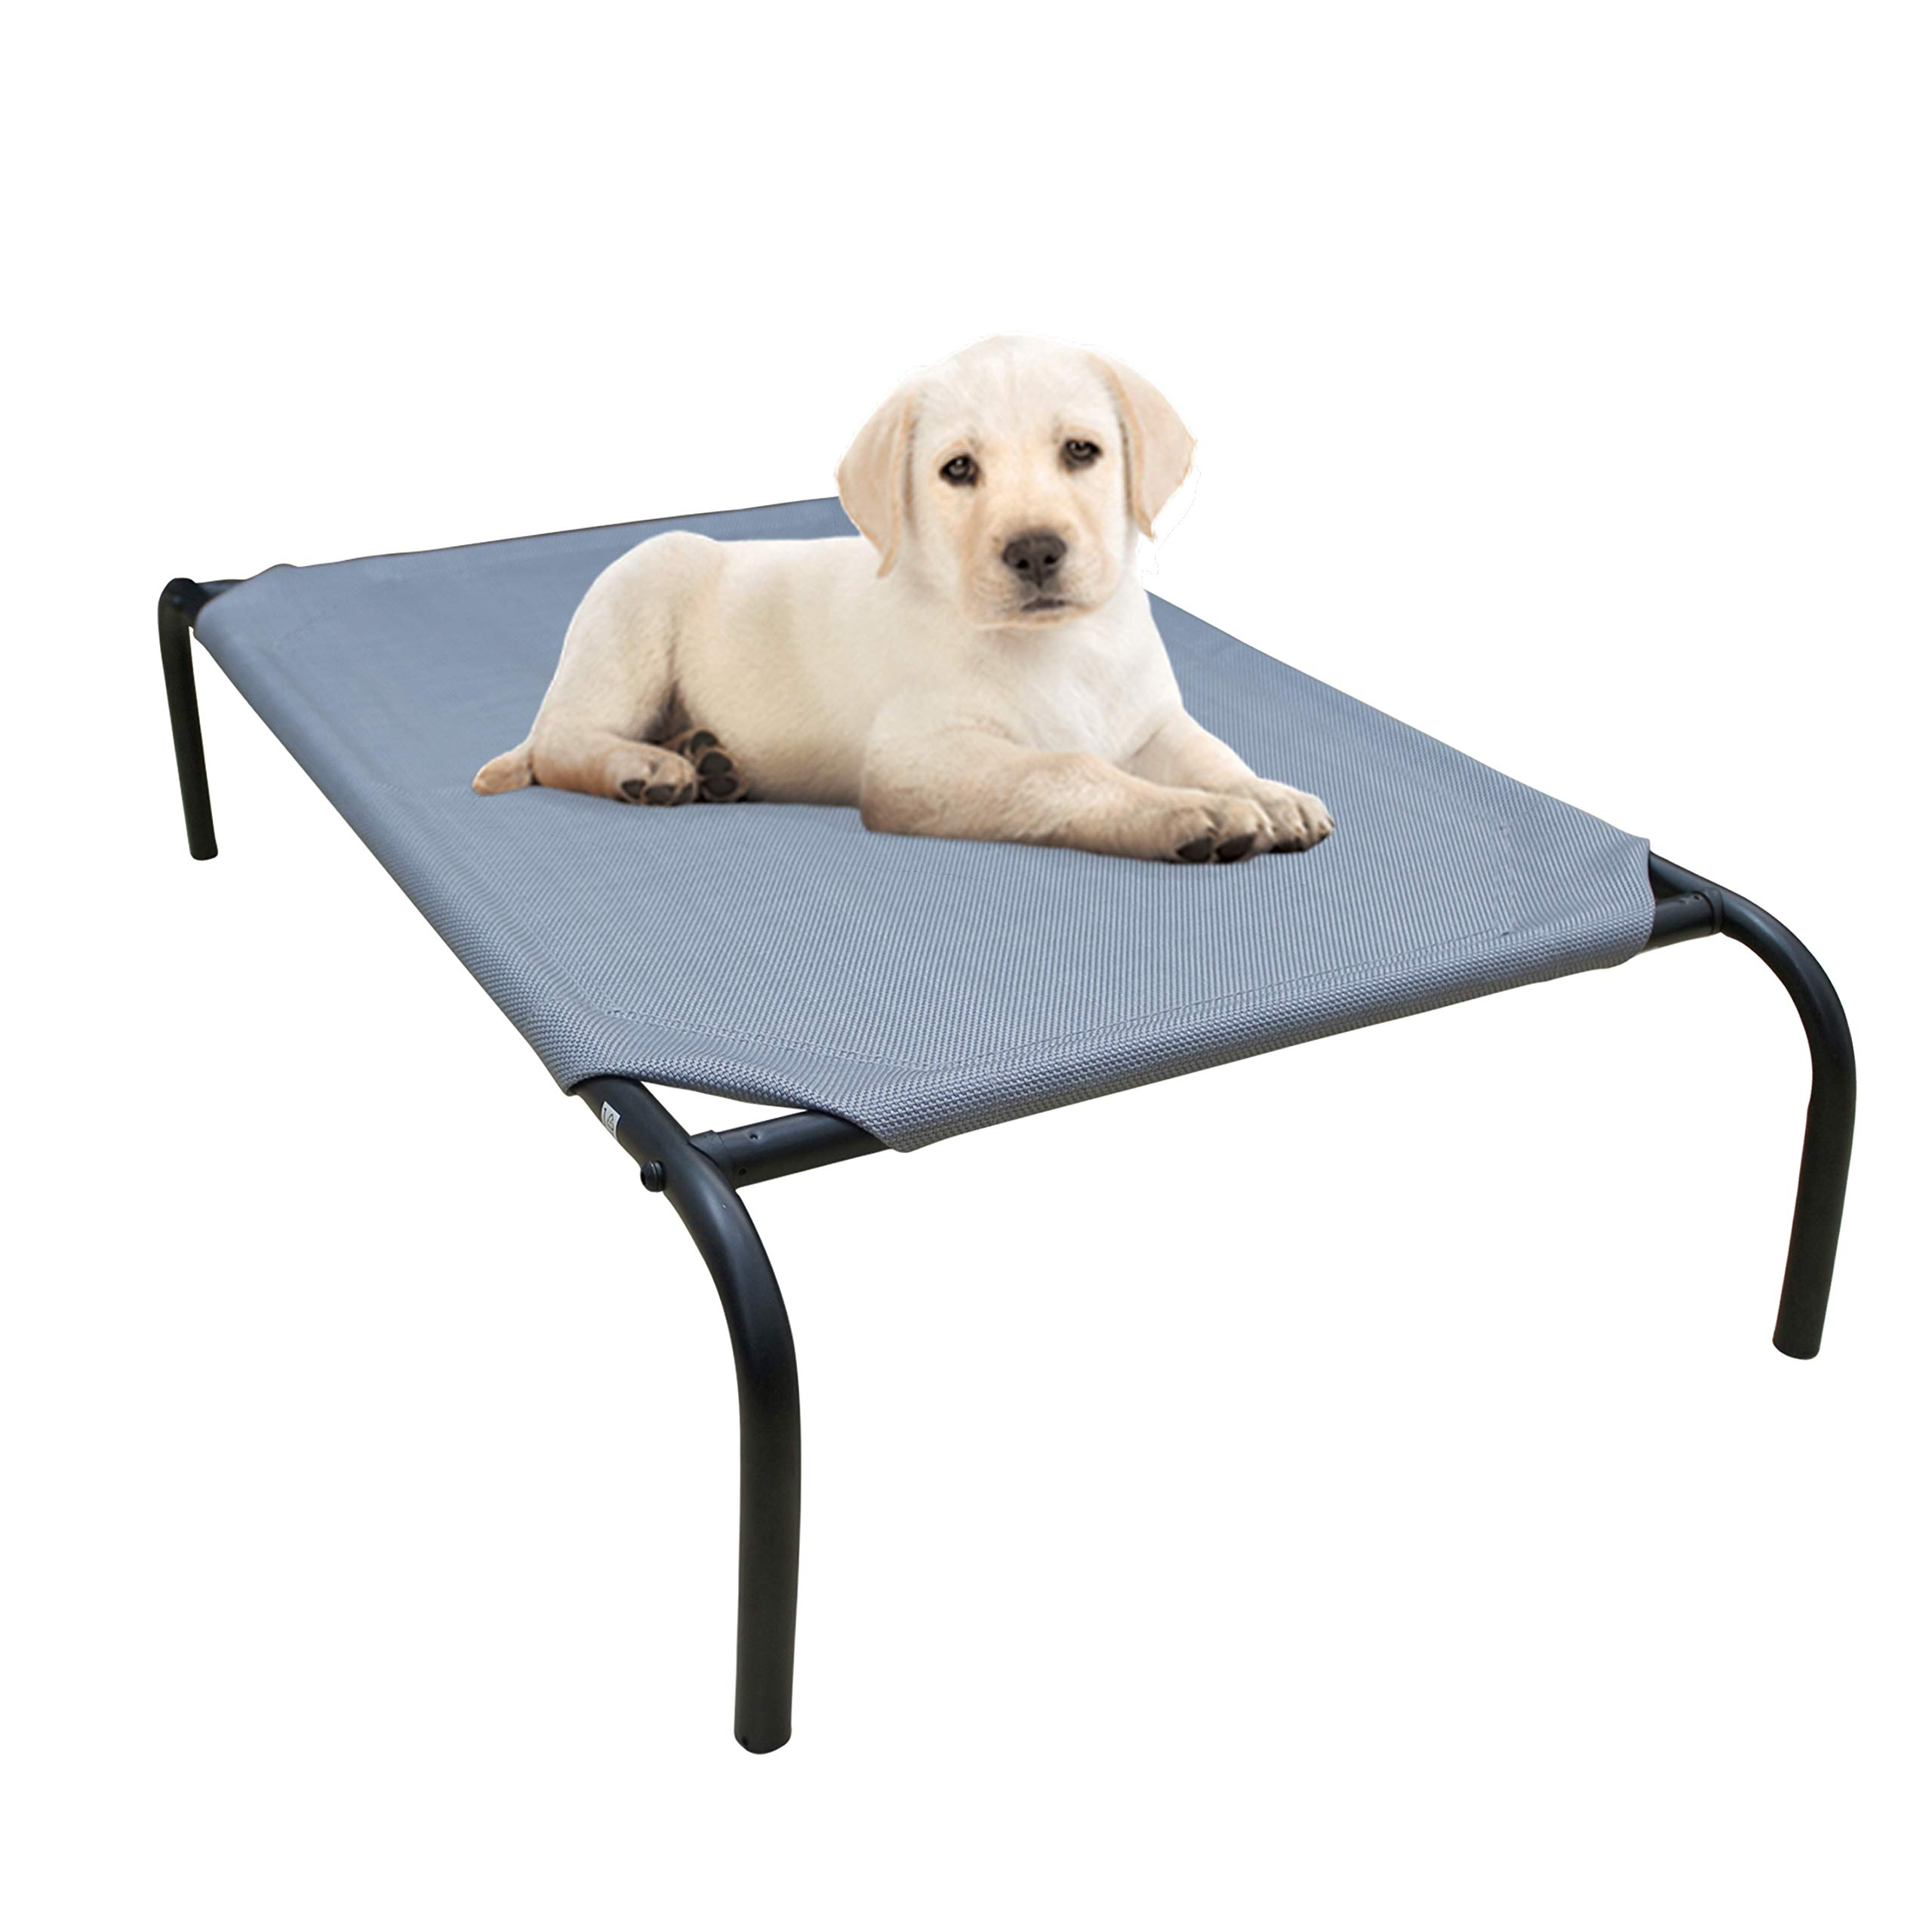 PHYEX Heavy Duty Steel-Framed Portable Elevated Pet Bed, Elevated Cooling Pet Cot